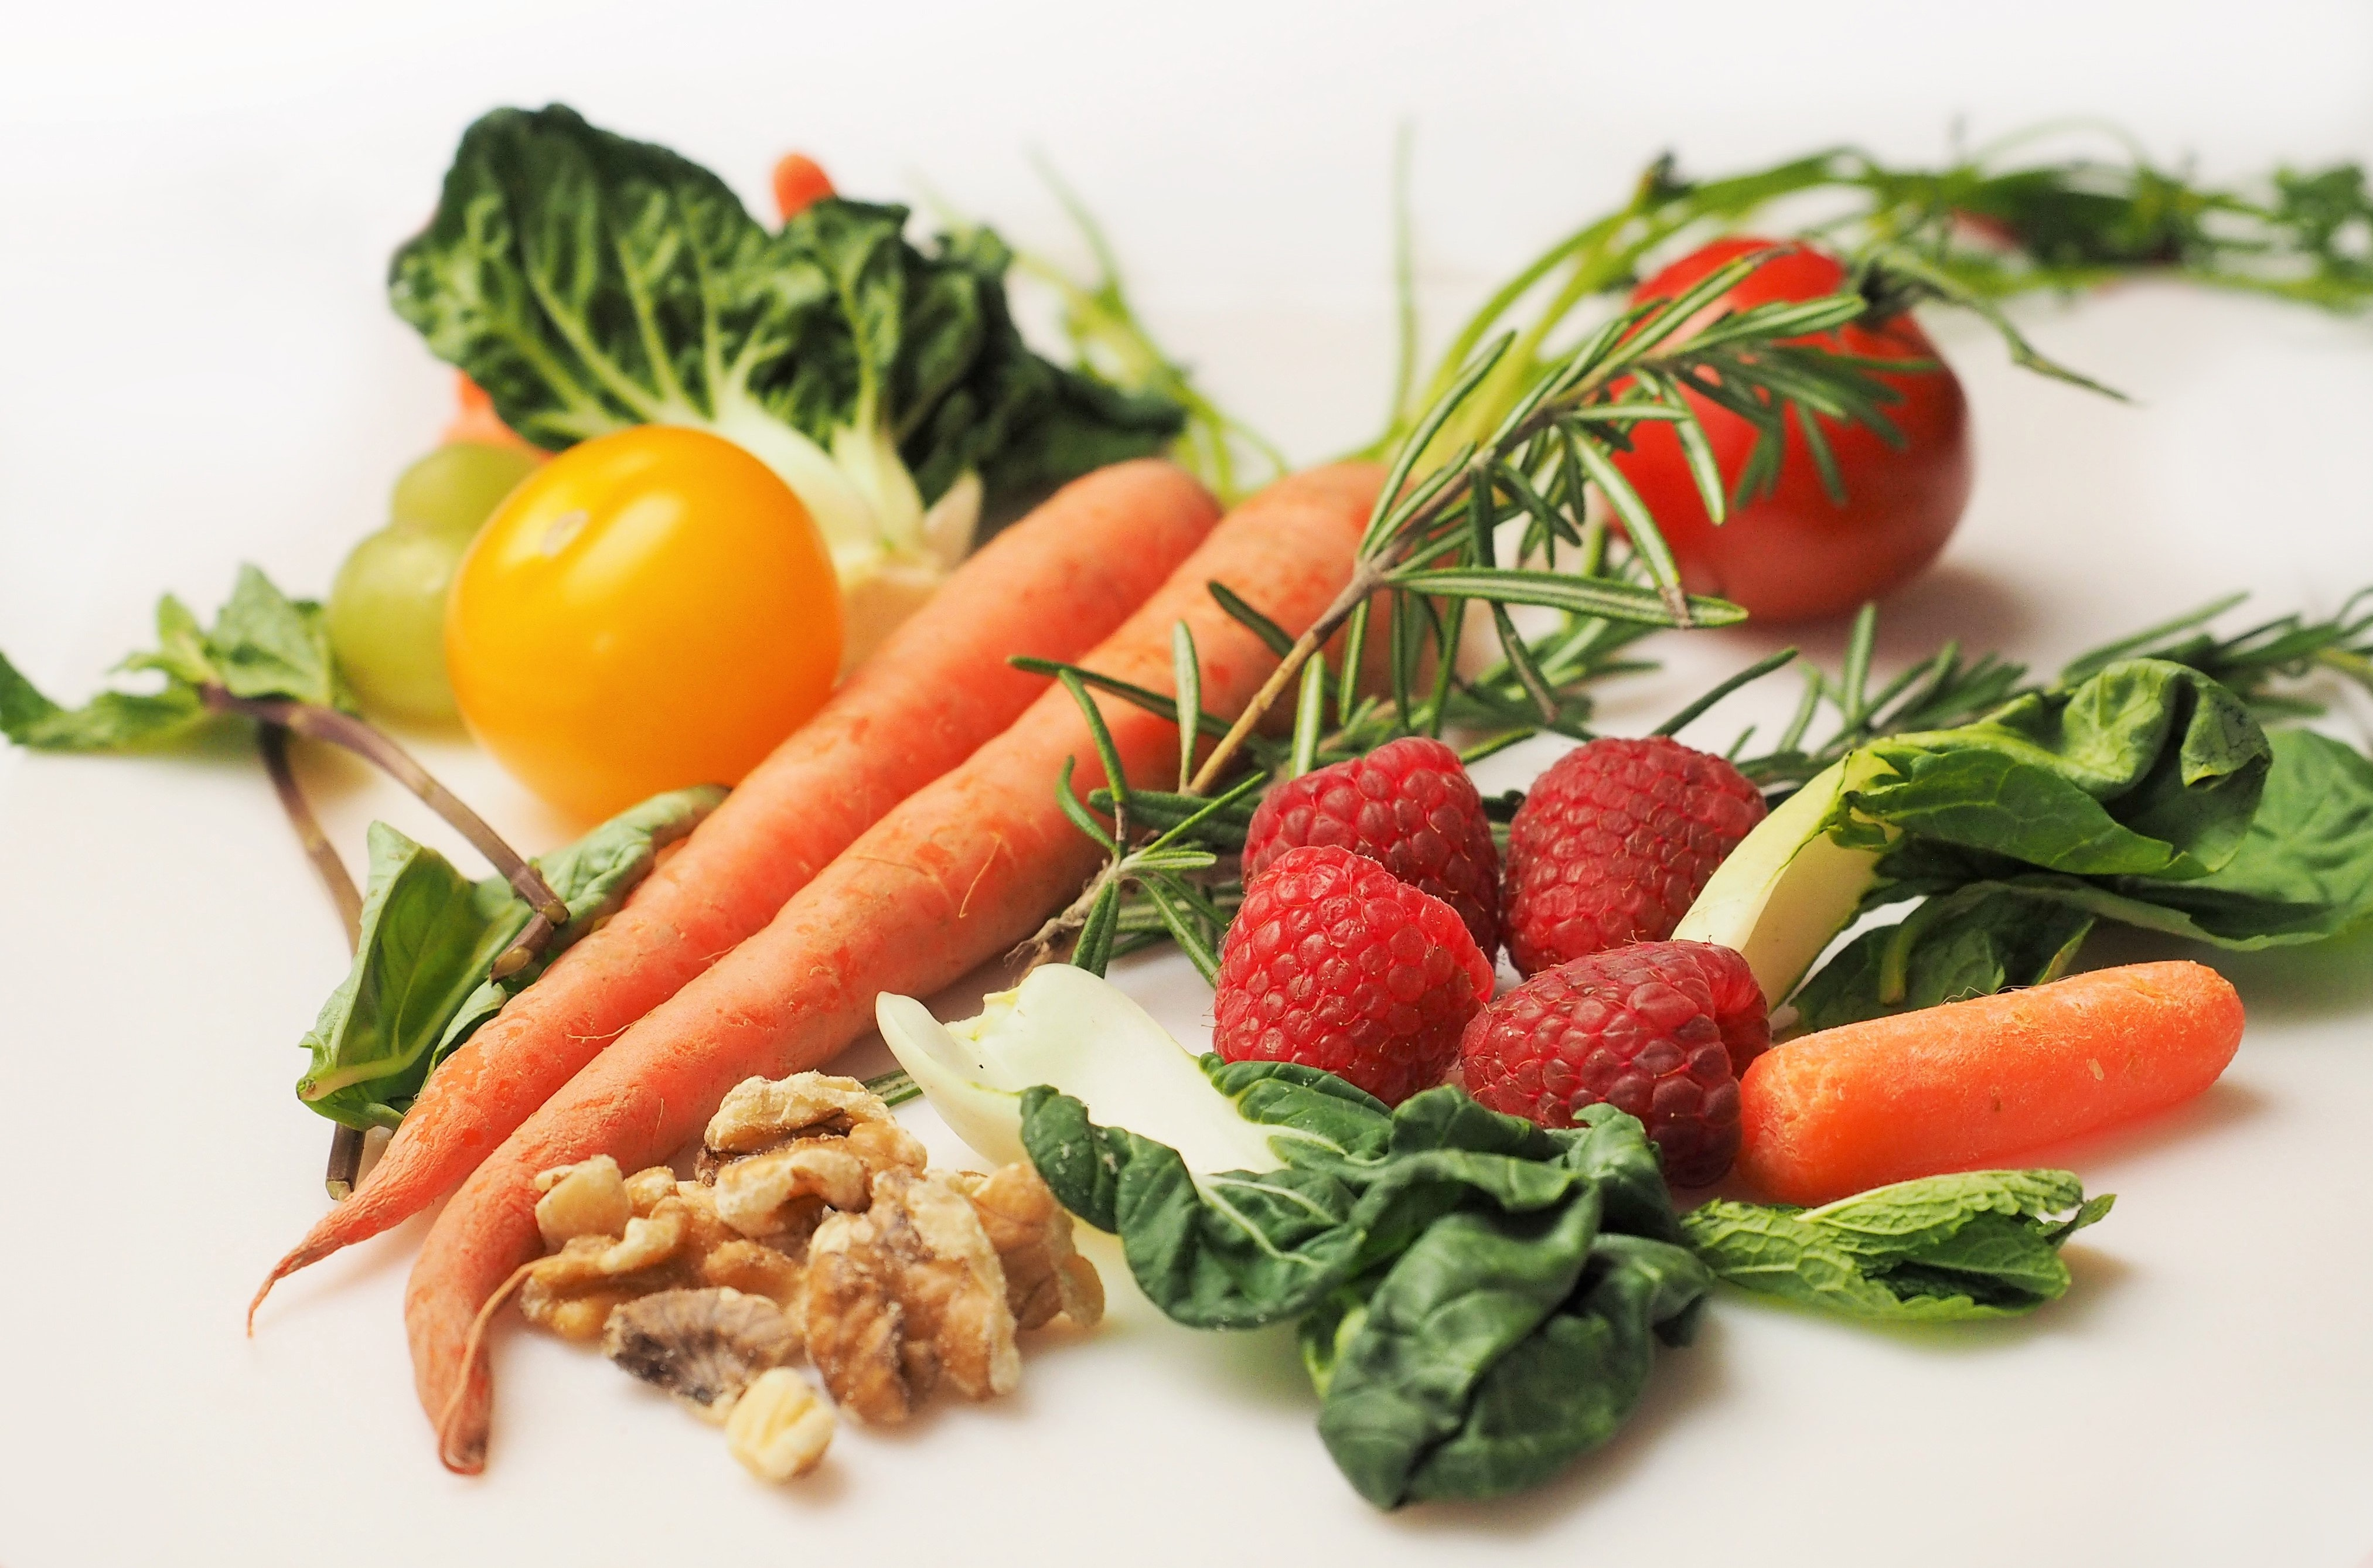 Carrots Tomatoes Vegetables and Other Fruits, Agriculture, Ripe, Nutrient, Nutrition, HQ Photo